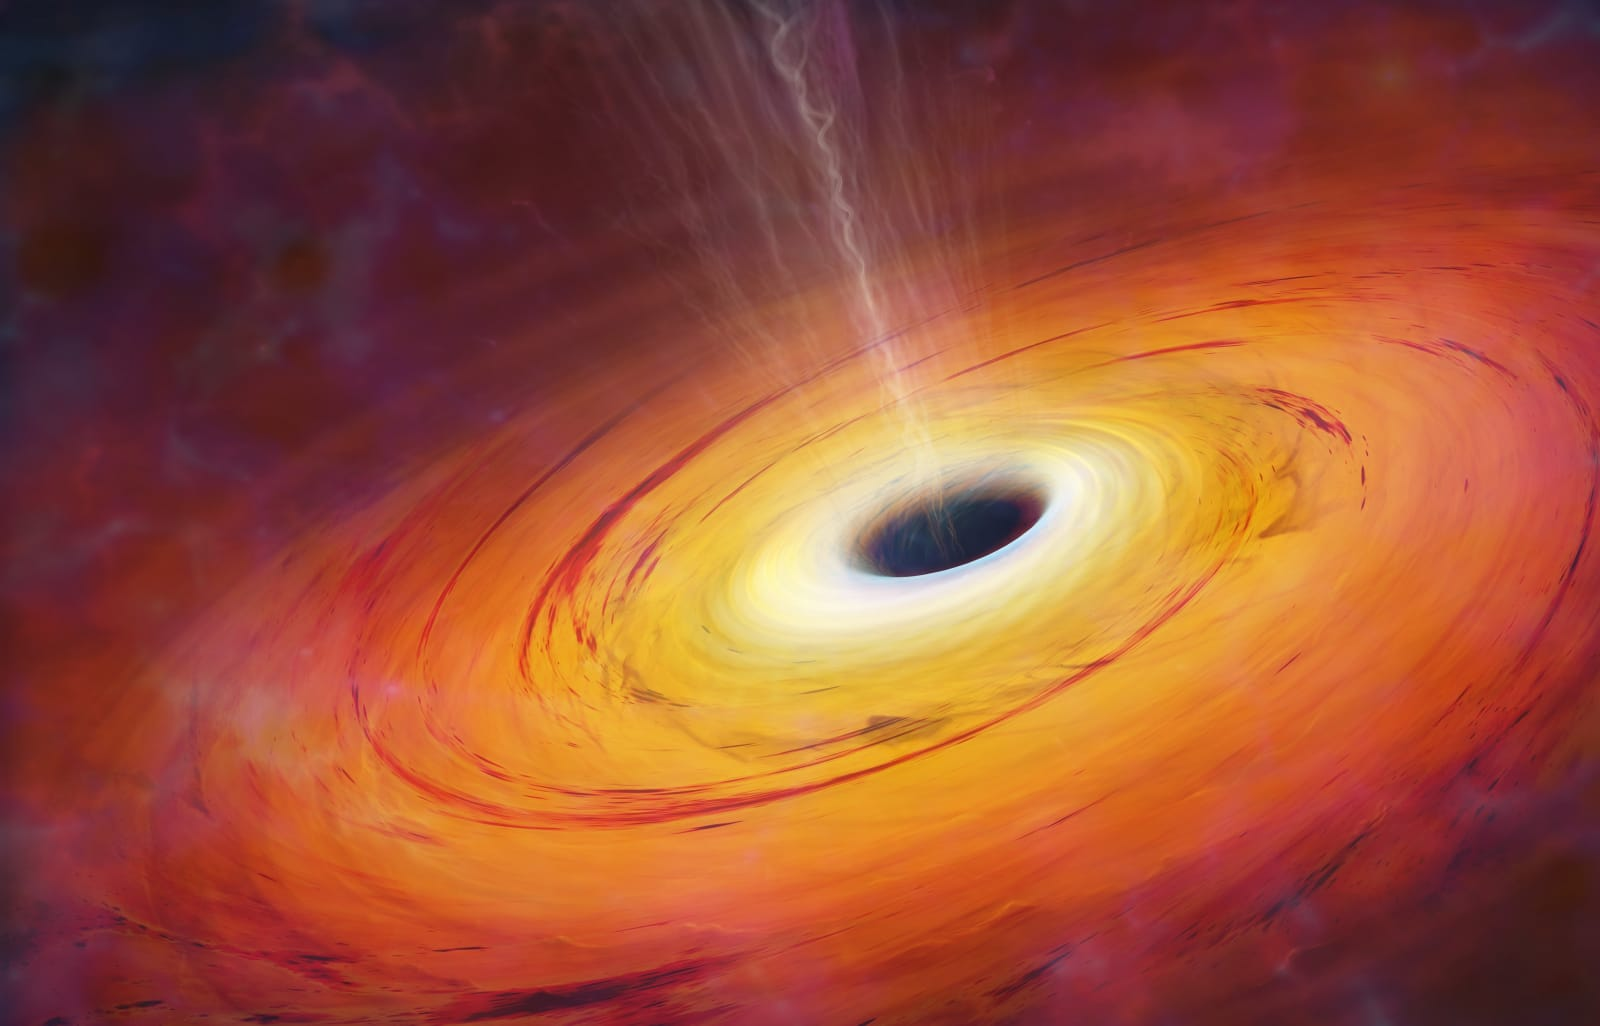 Event Horizon Telescope will soon take the first black hole photo